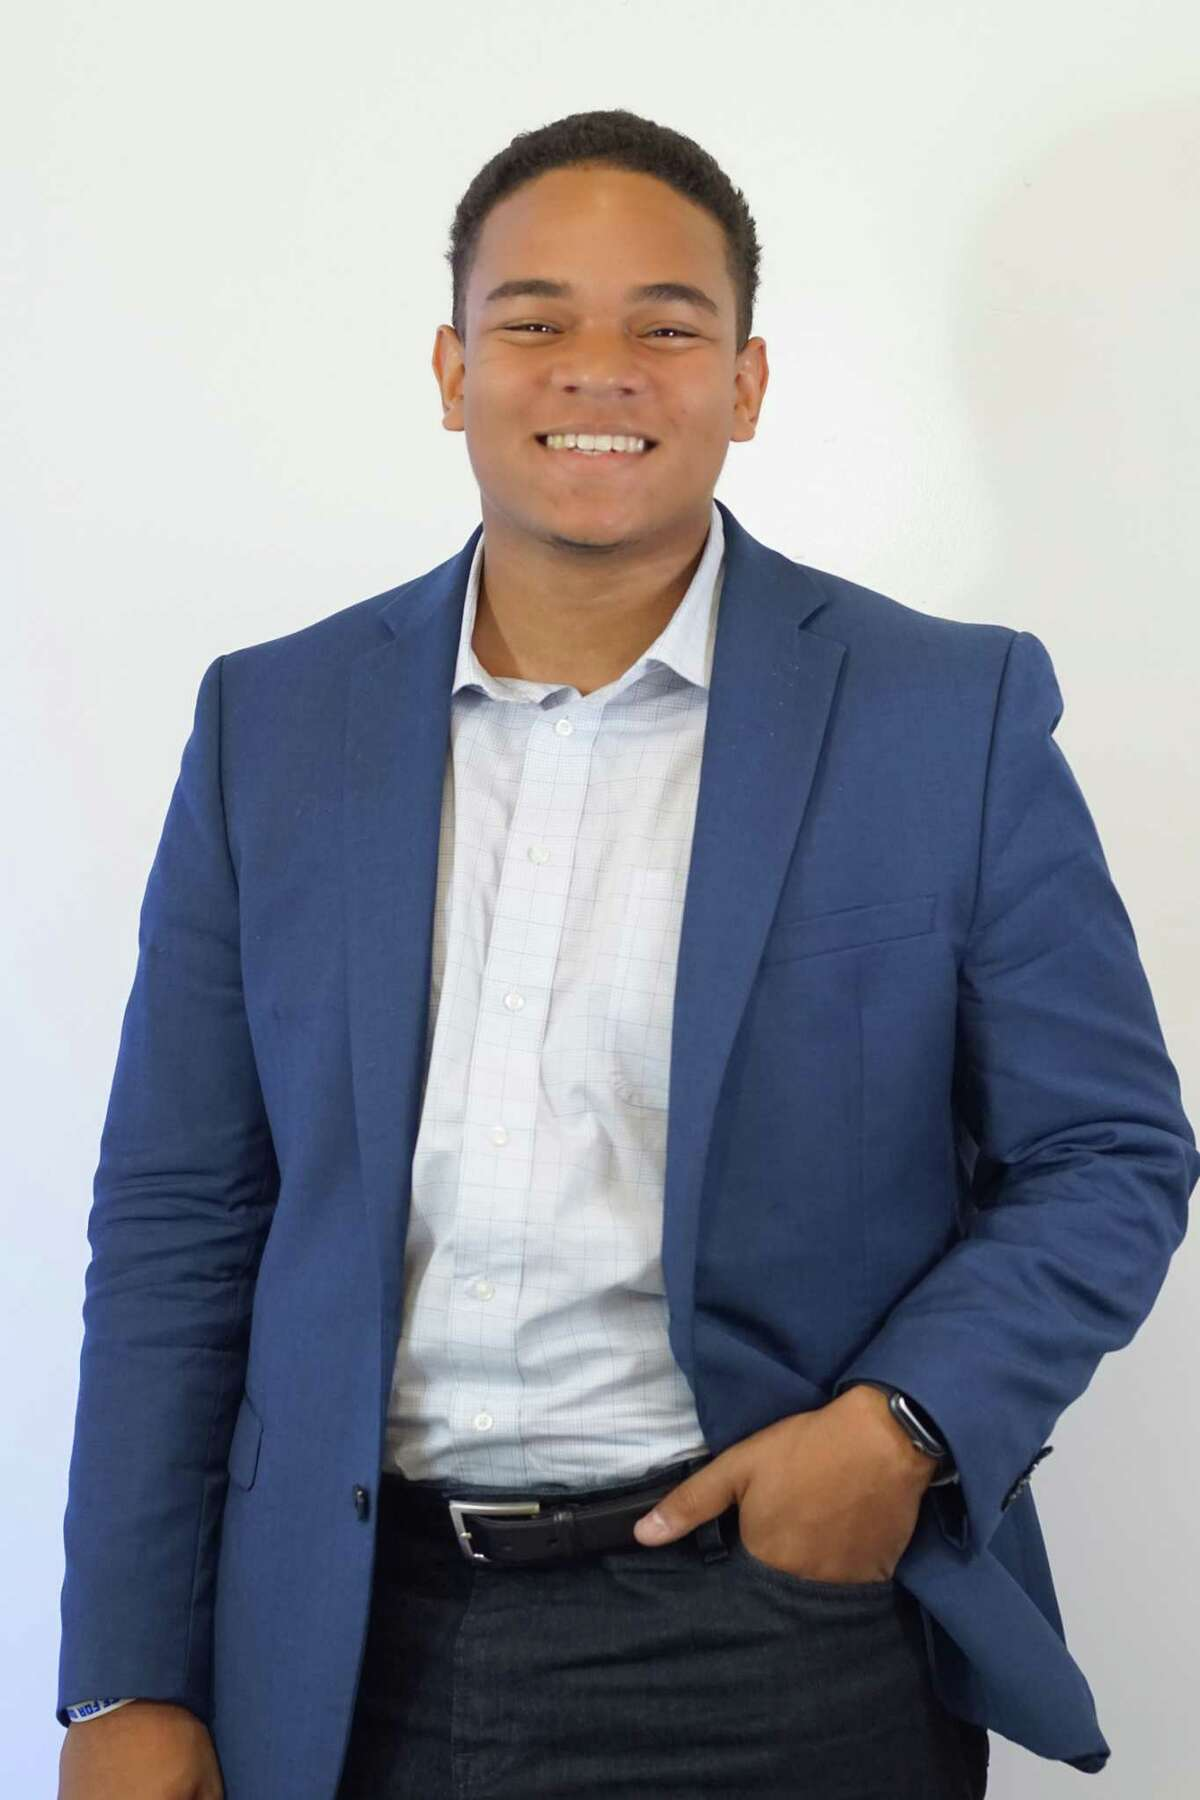 Marcel McClinton, 18, is running for the at-large city council position held by Michael Kubosh, who is seeking re-election.